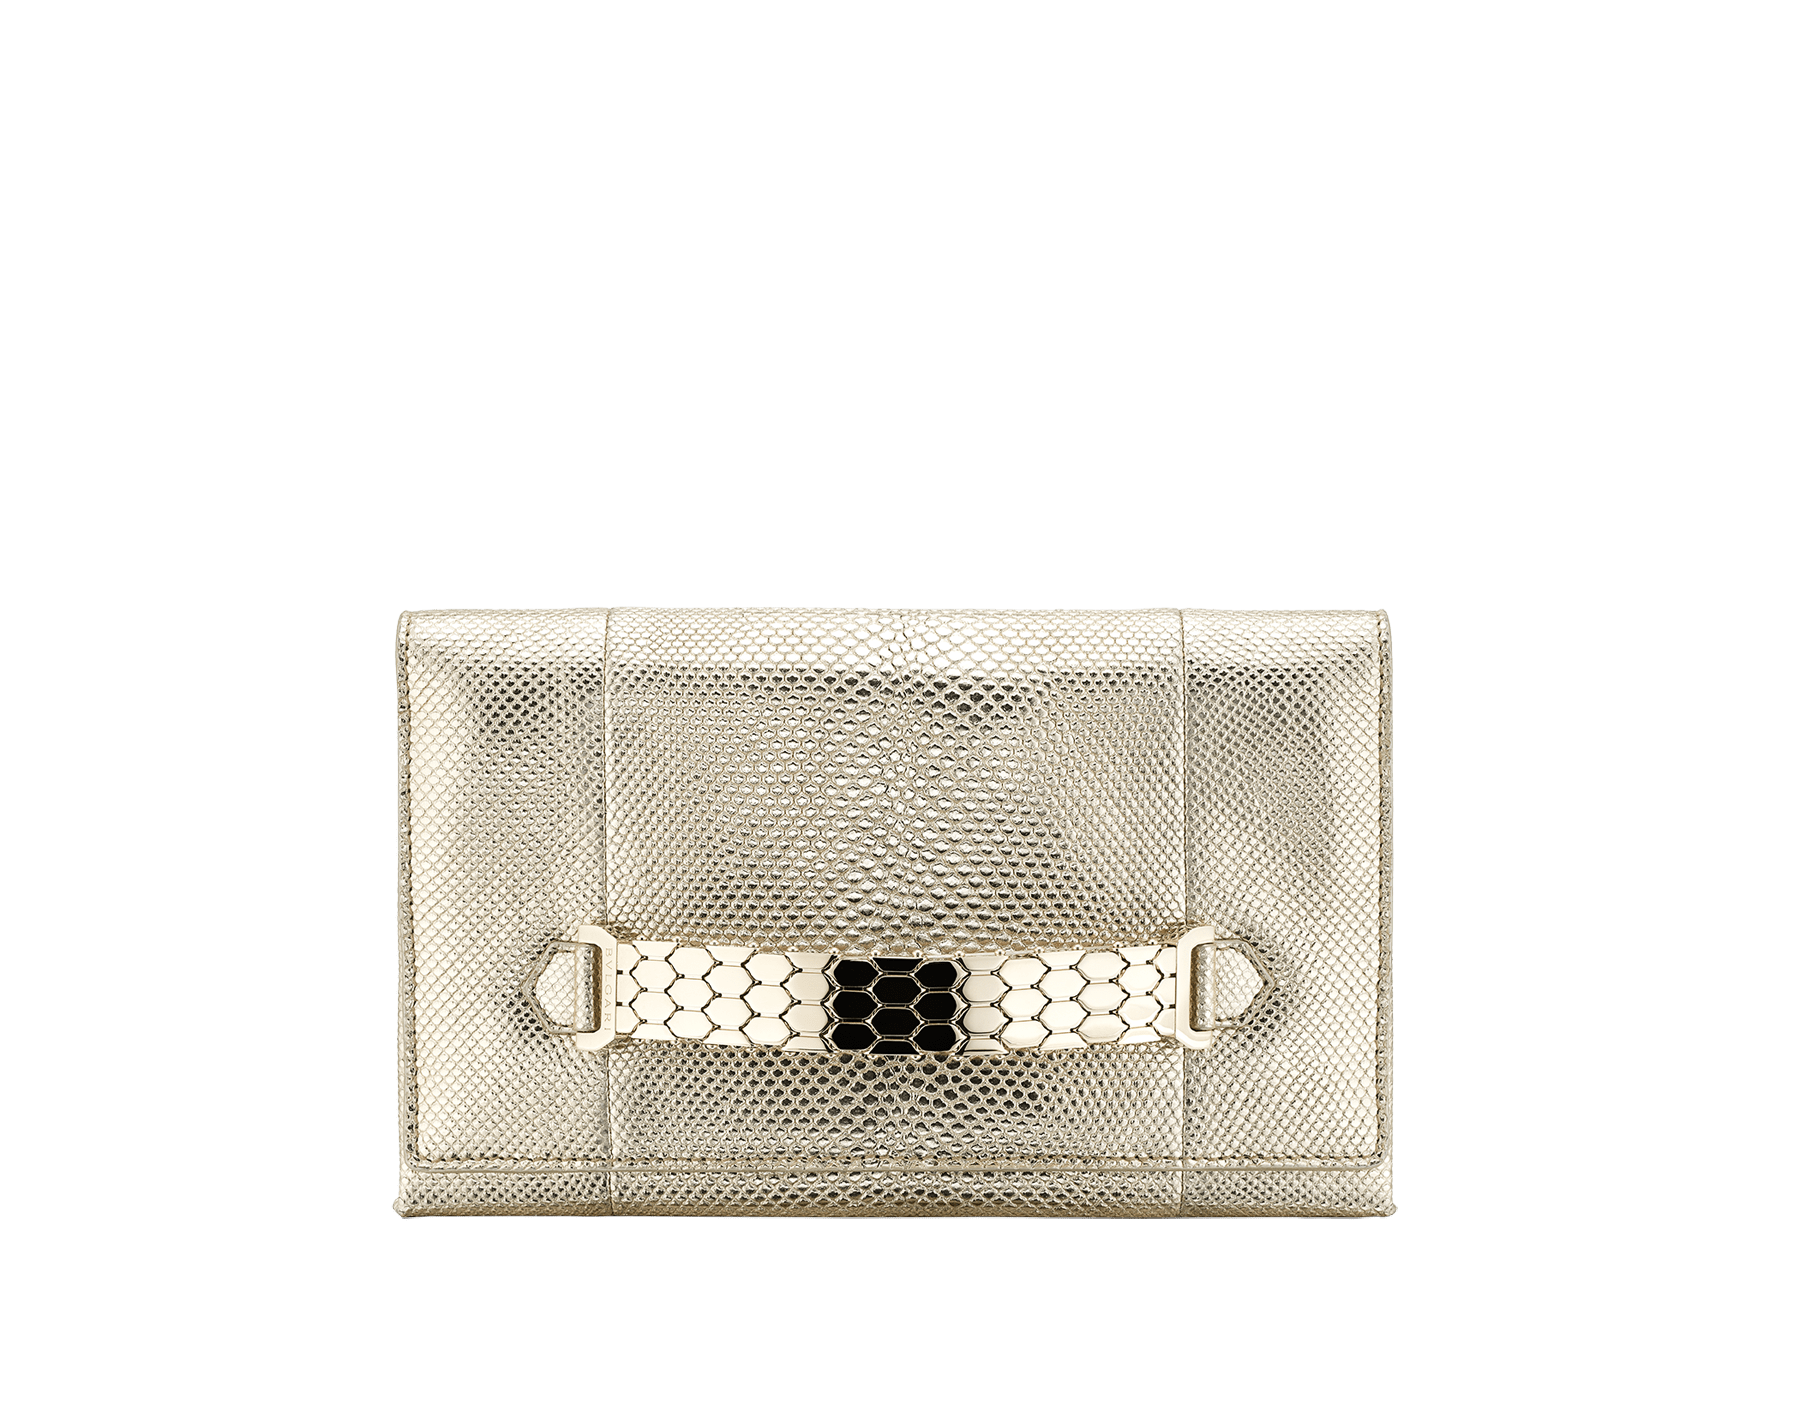 """Serpenti Evening"" clutch with handle in ""Molten"" light gold karung skin with black nappa leather inner lining. Light gold Serpenti Seduttori handle. 290654 image 1"